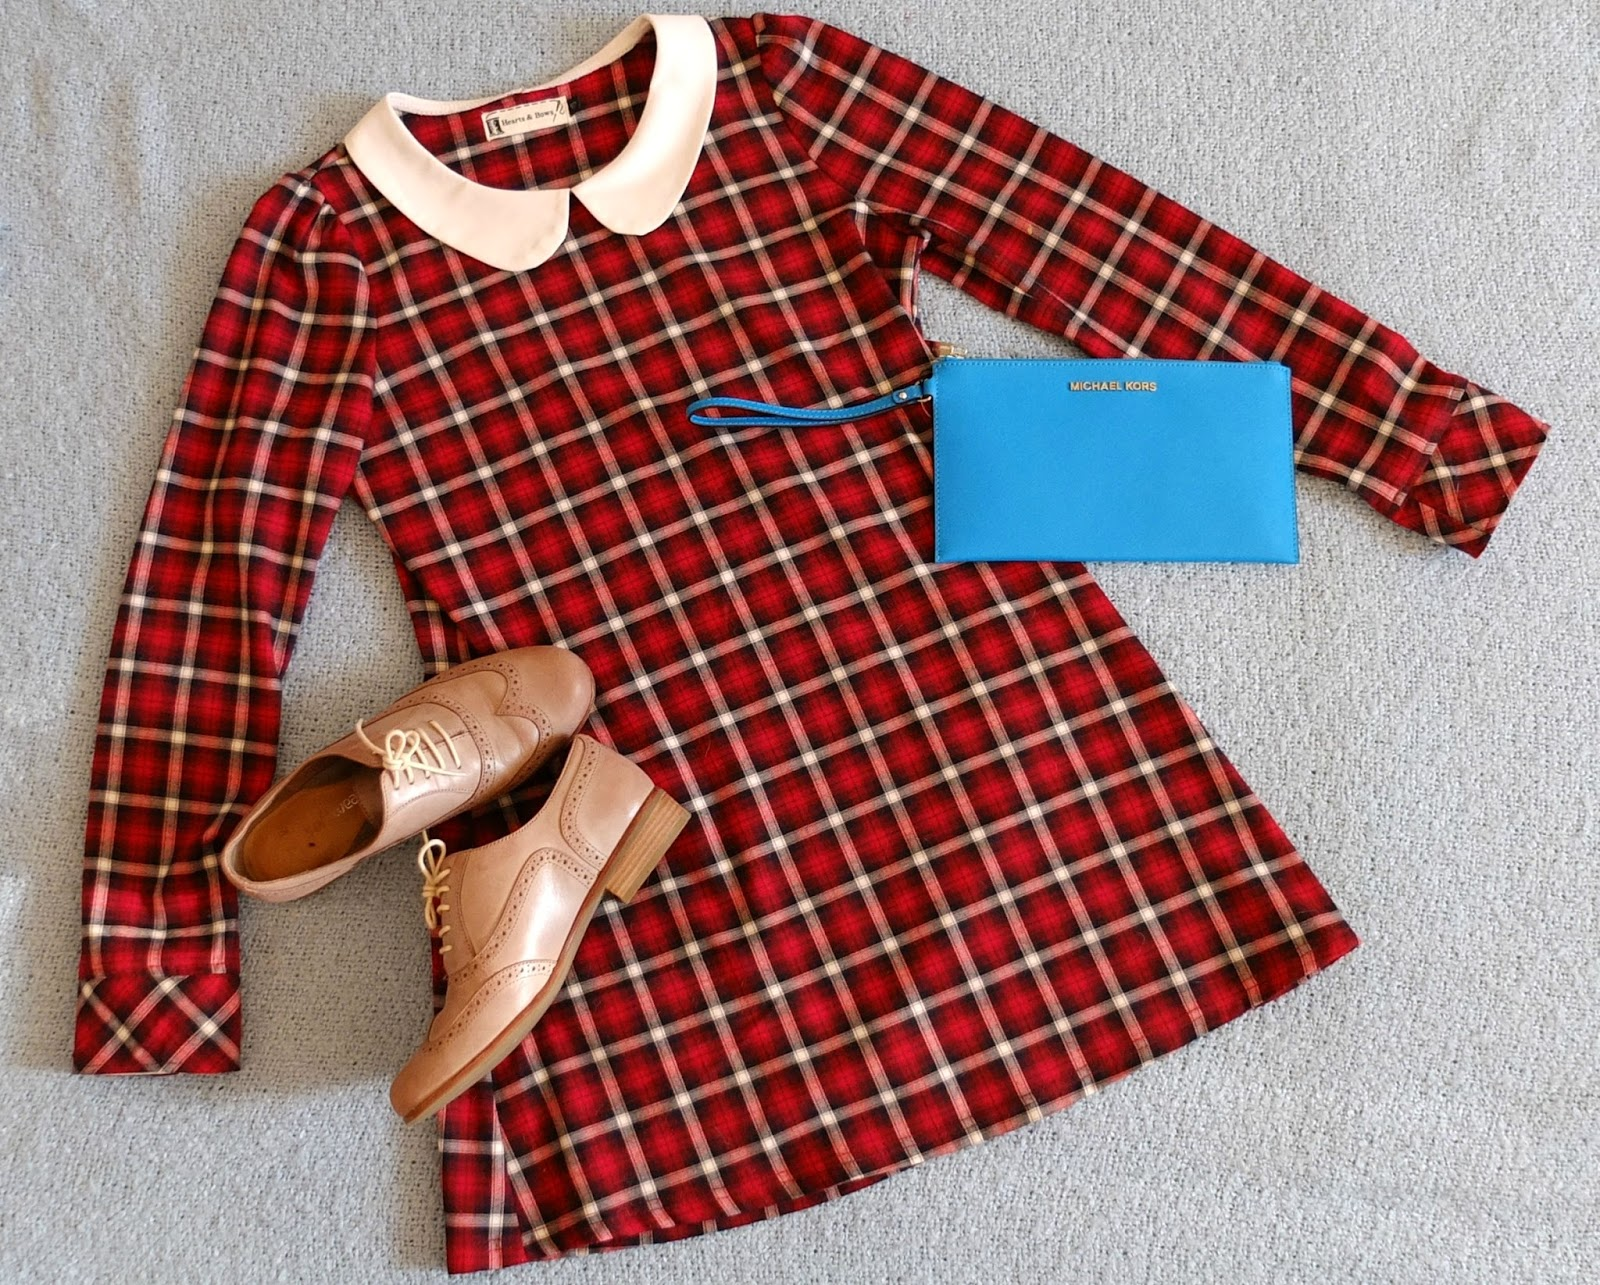 Preppy dress with Clarks brogues and Michael Kors bag